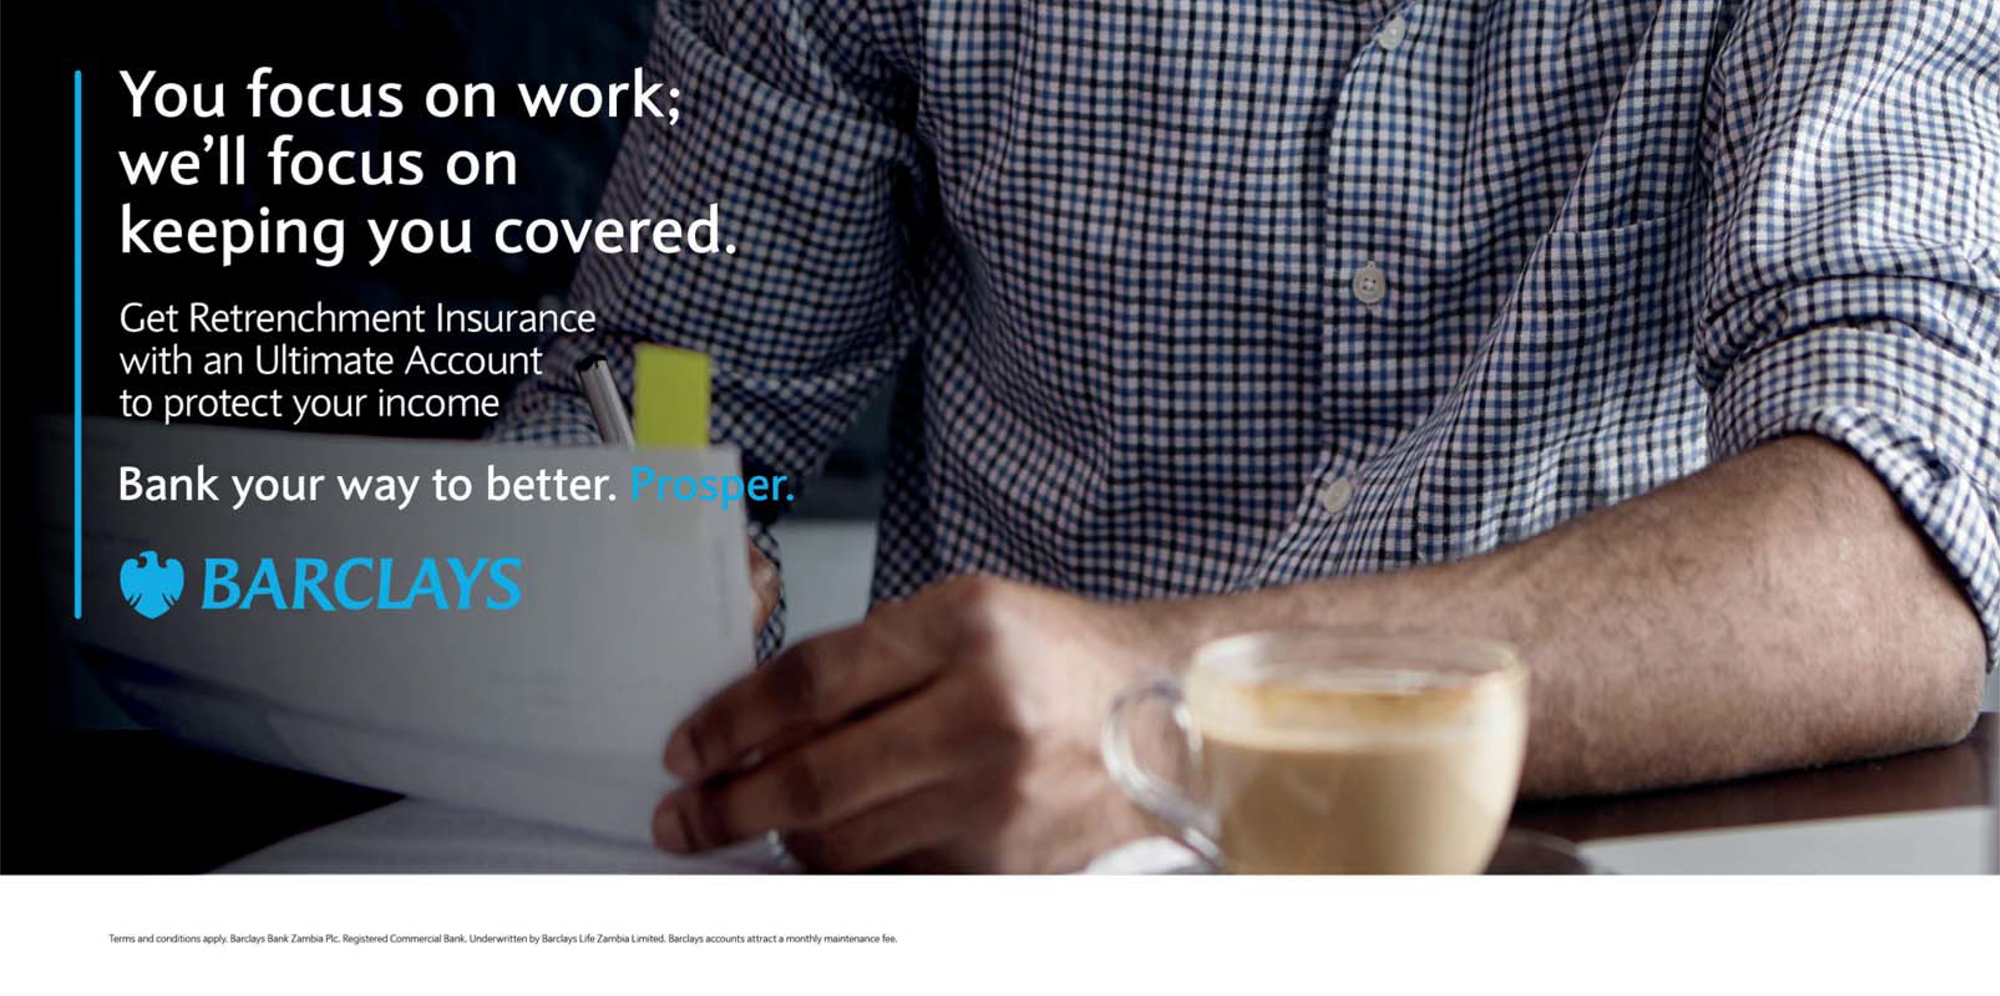 Barclays Personal Banking Campaign Toolkit 26 APRIL-70.jpg